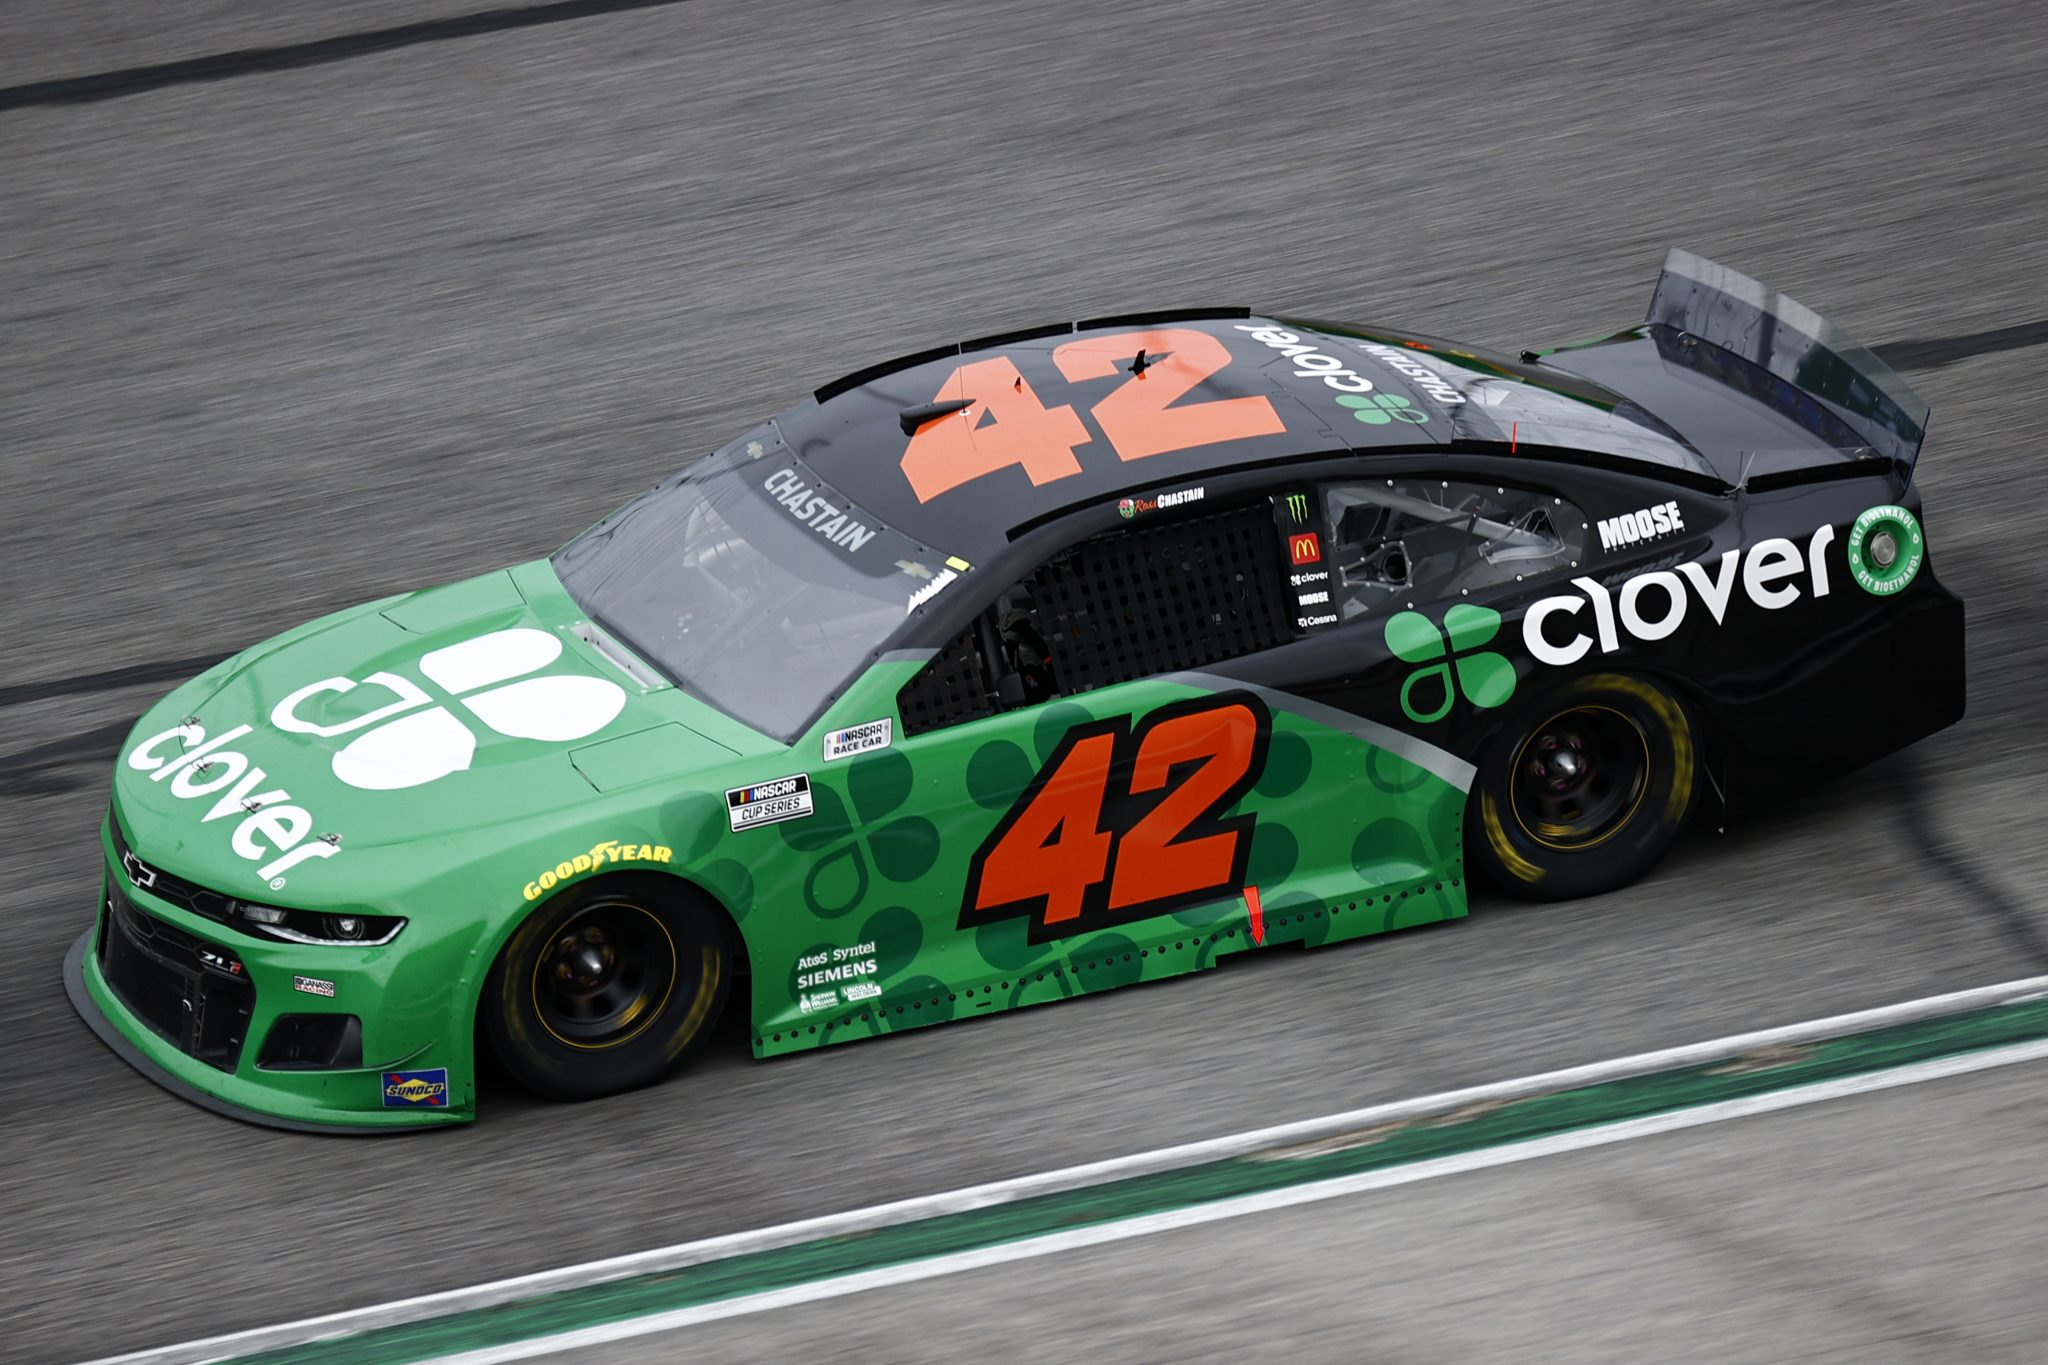 HAMPTON, GEORGIA - JULY 11: Ross Chastain, driver of the #42 Clover Chevrolet, drives during the NASCAR Cup Series Quaker State 400 presented by Walmart at Atlanta Motor Speedway on July 11, 2021 in Hampton, Georgia. (Photo by Jared C. Tilton/Getty Images) | Getty Images